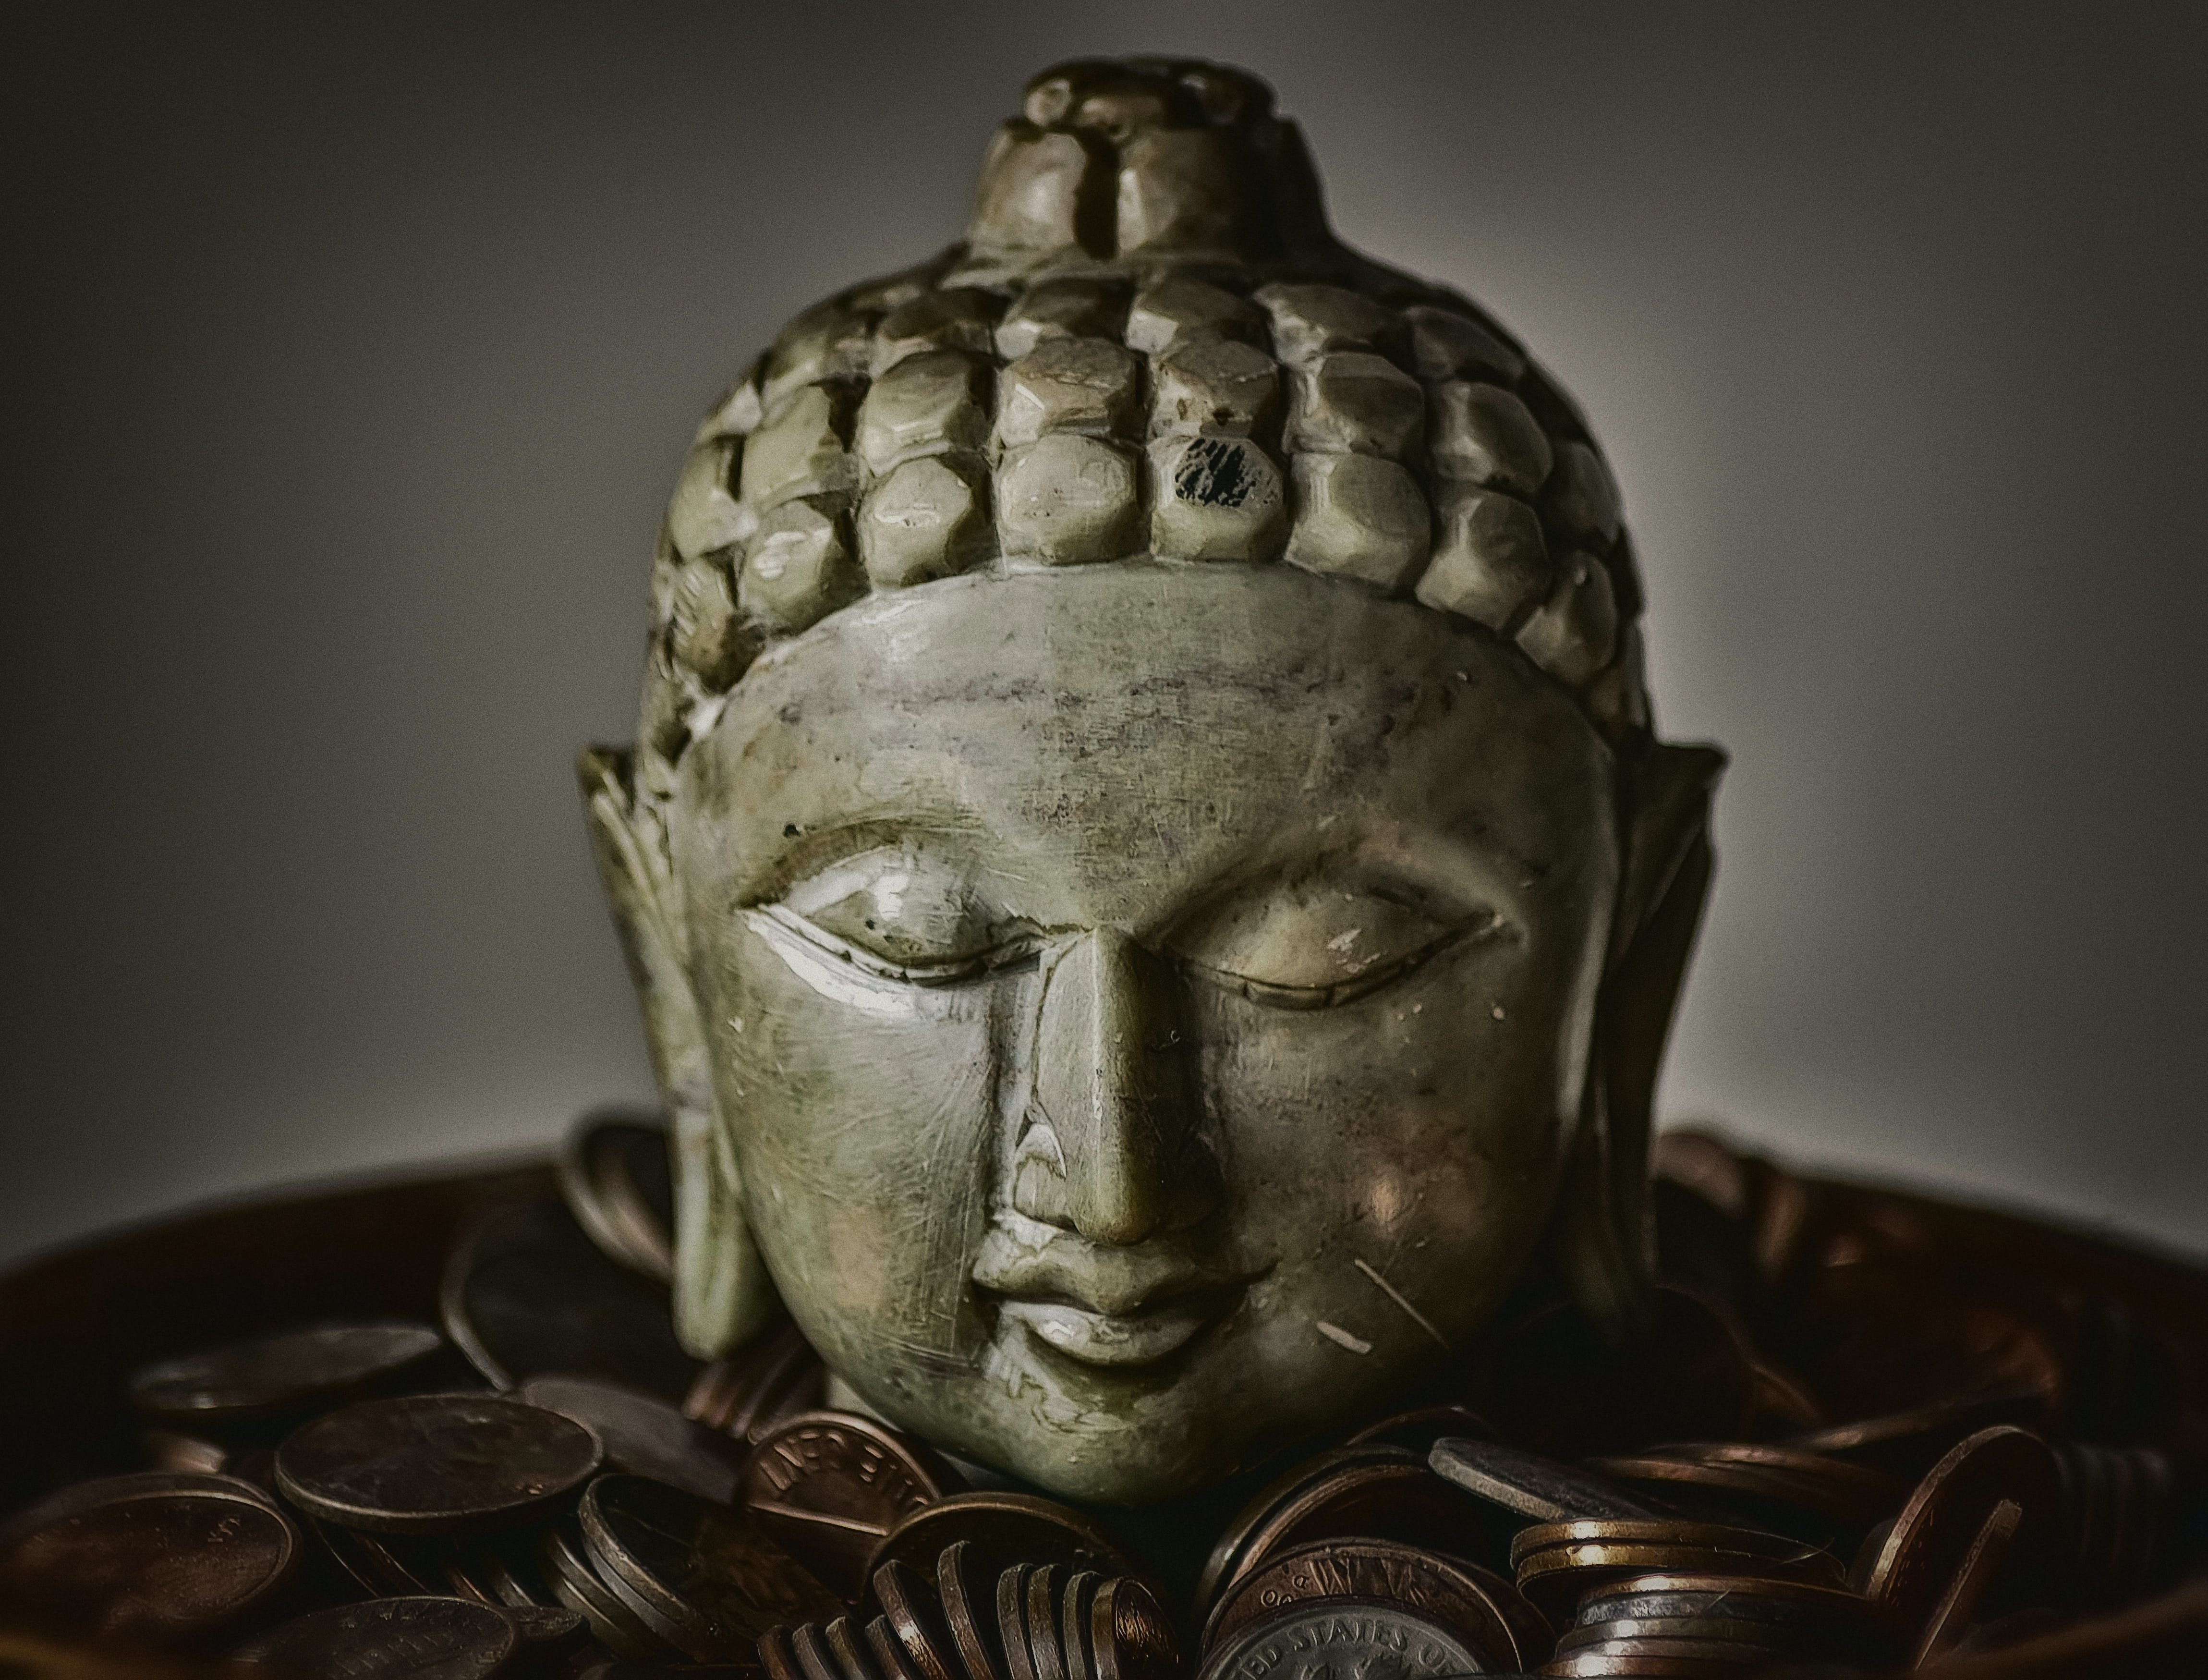 Gautama Buddha Bust Surrounded by Coins